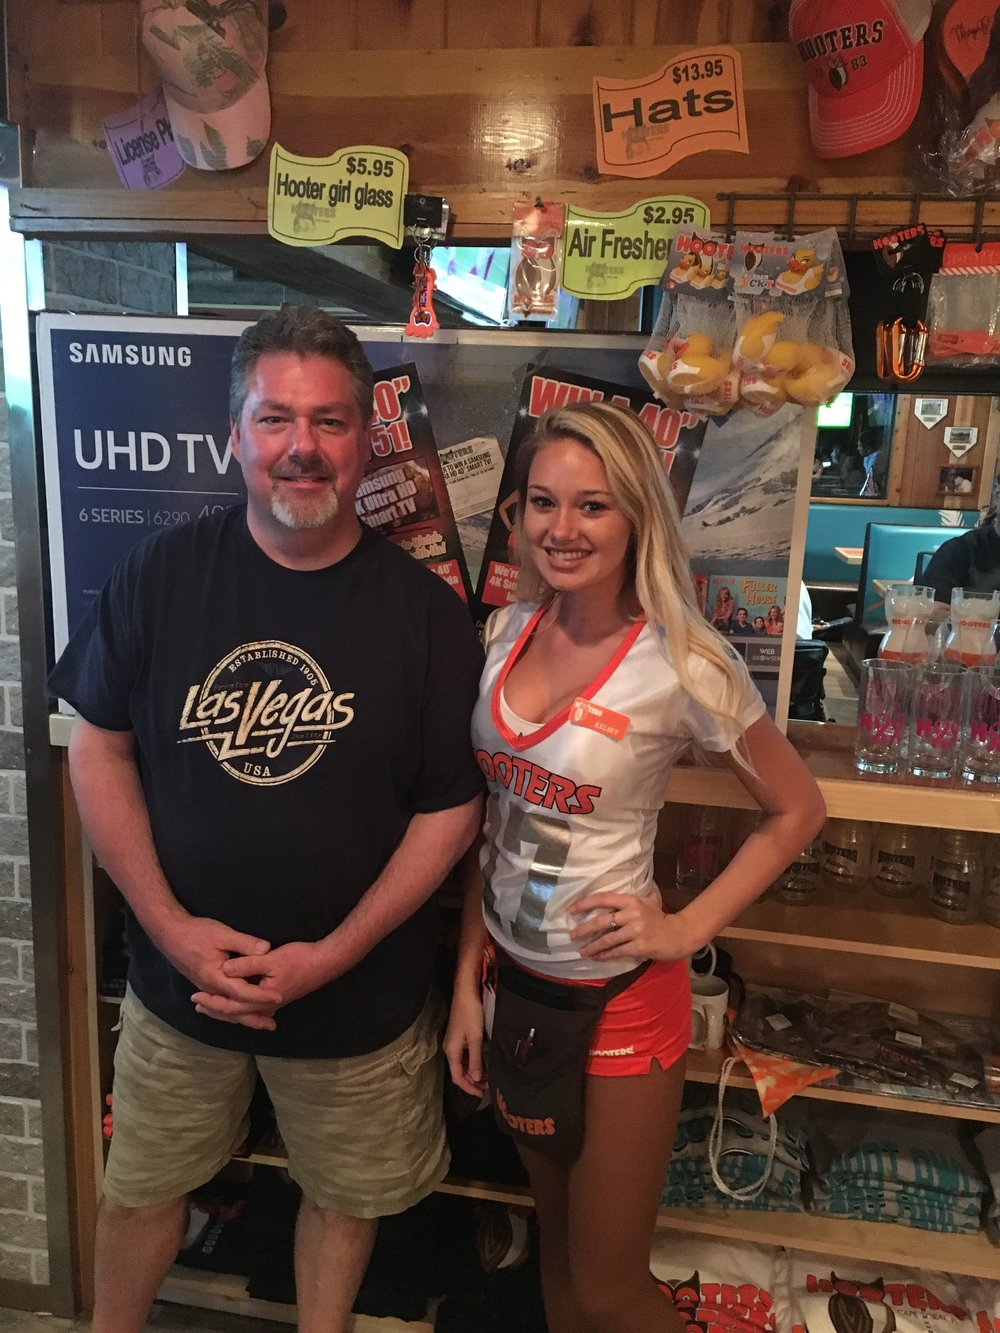 Shane - Winner at Hooters of Cape Coral